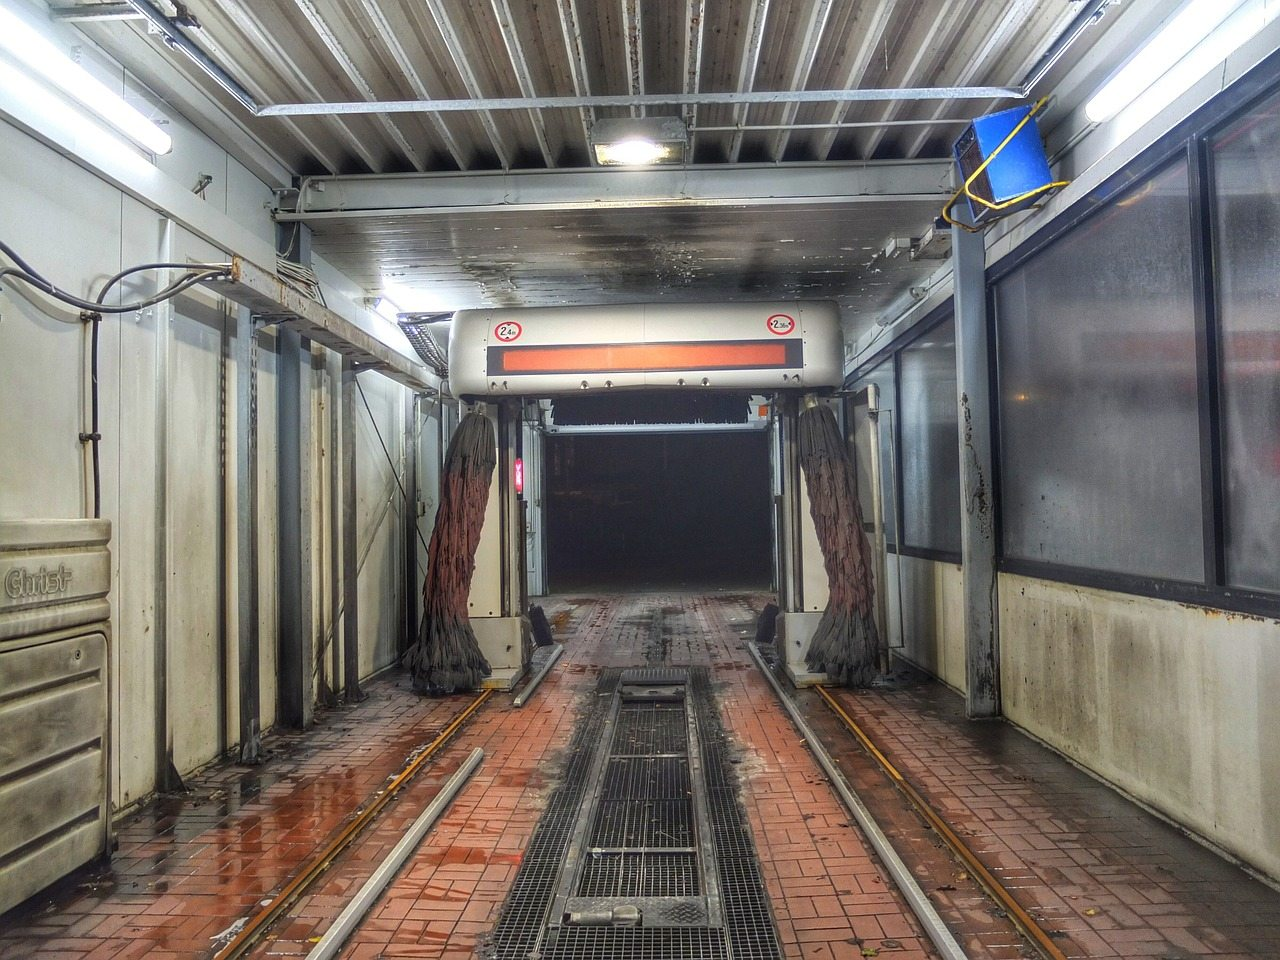 Buying a self service car wash with a business plan